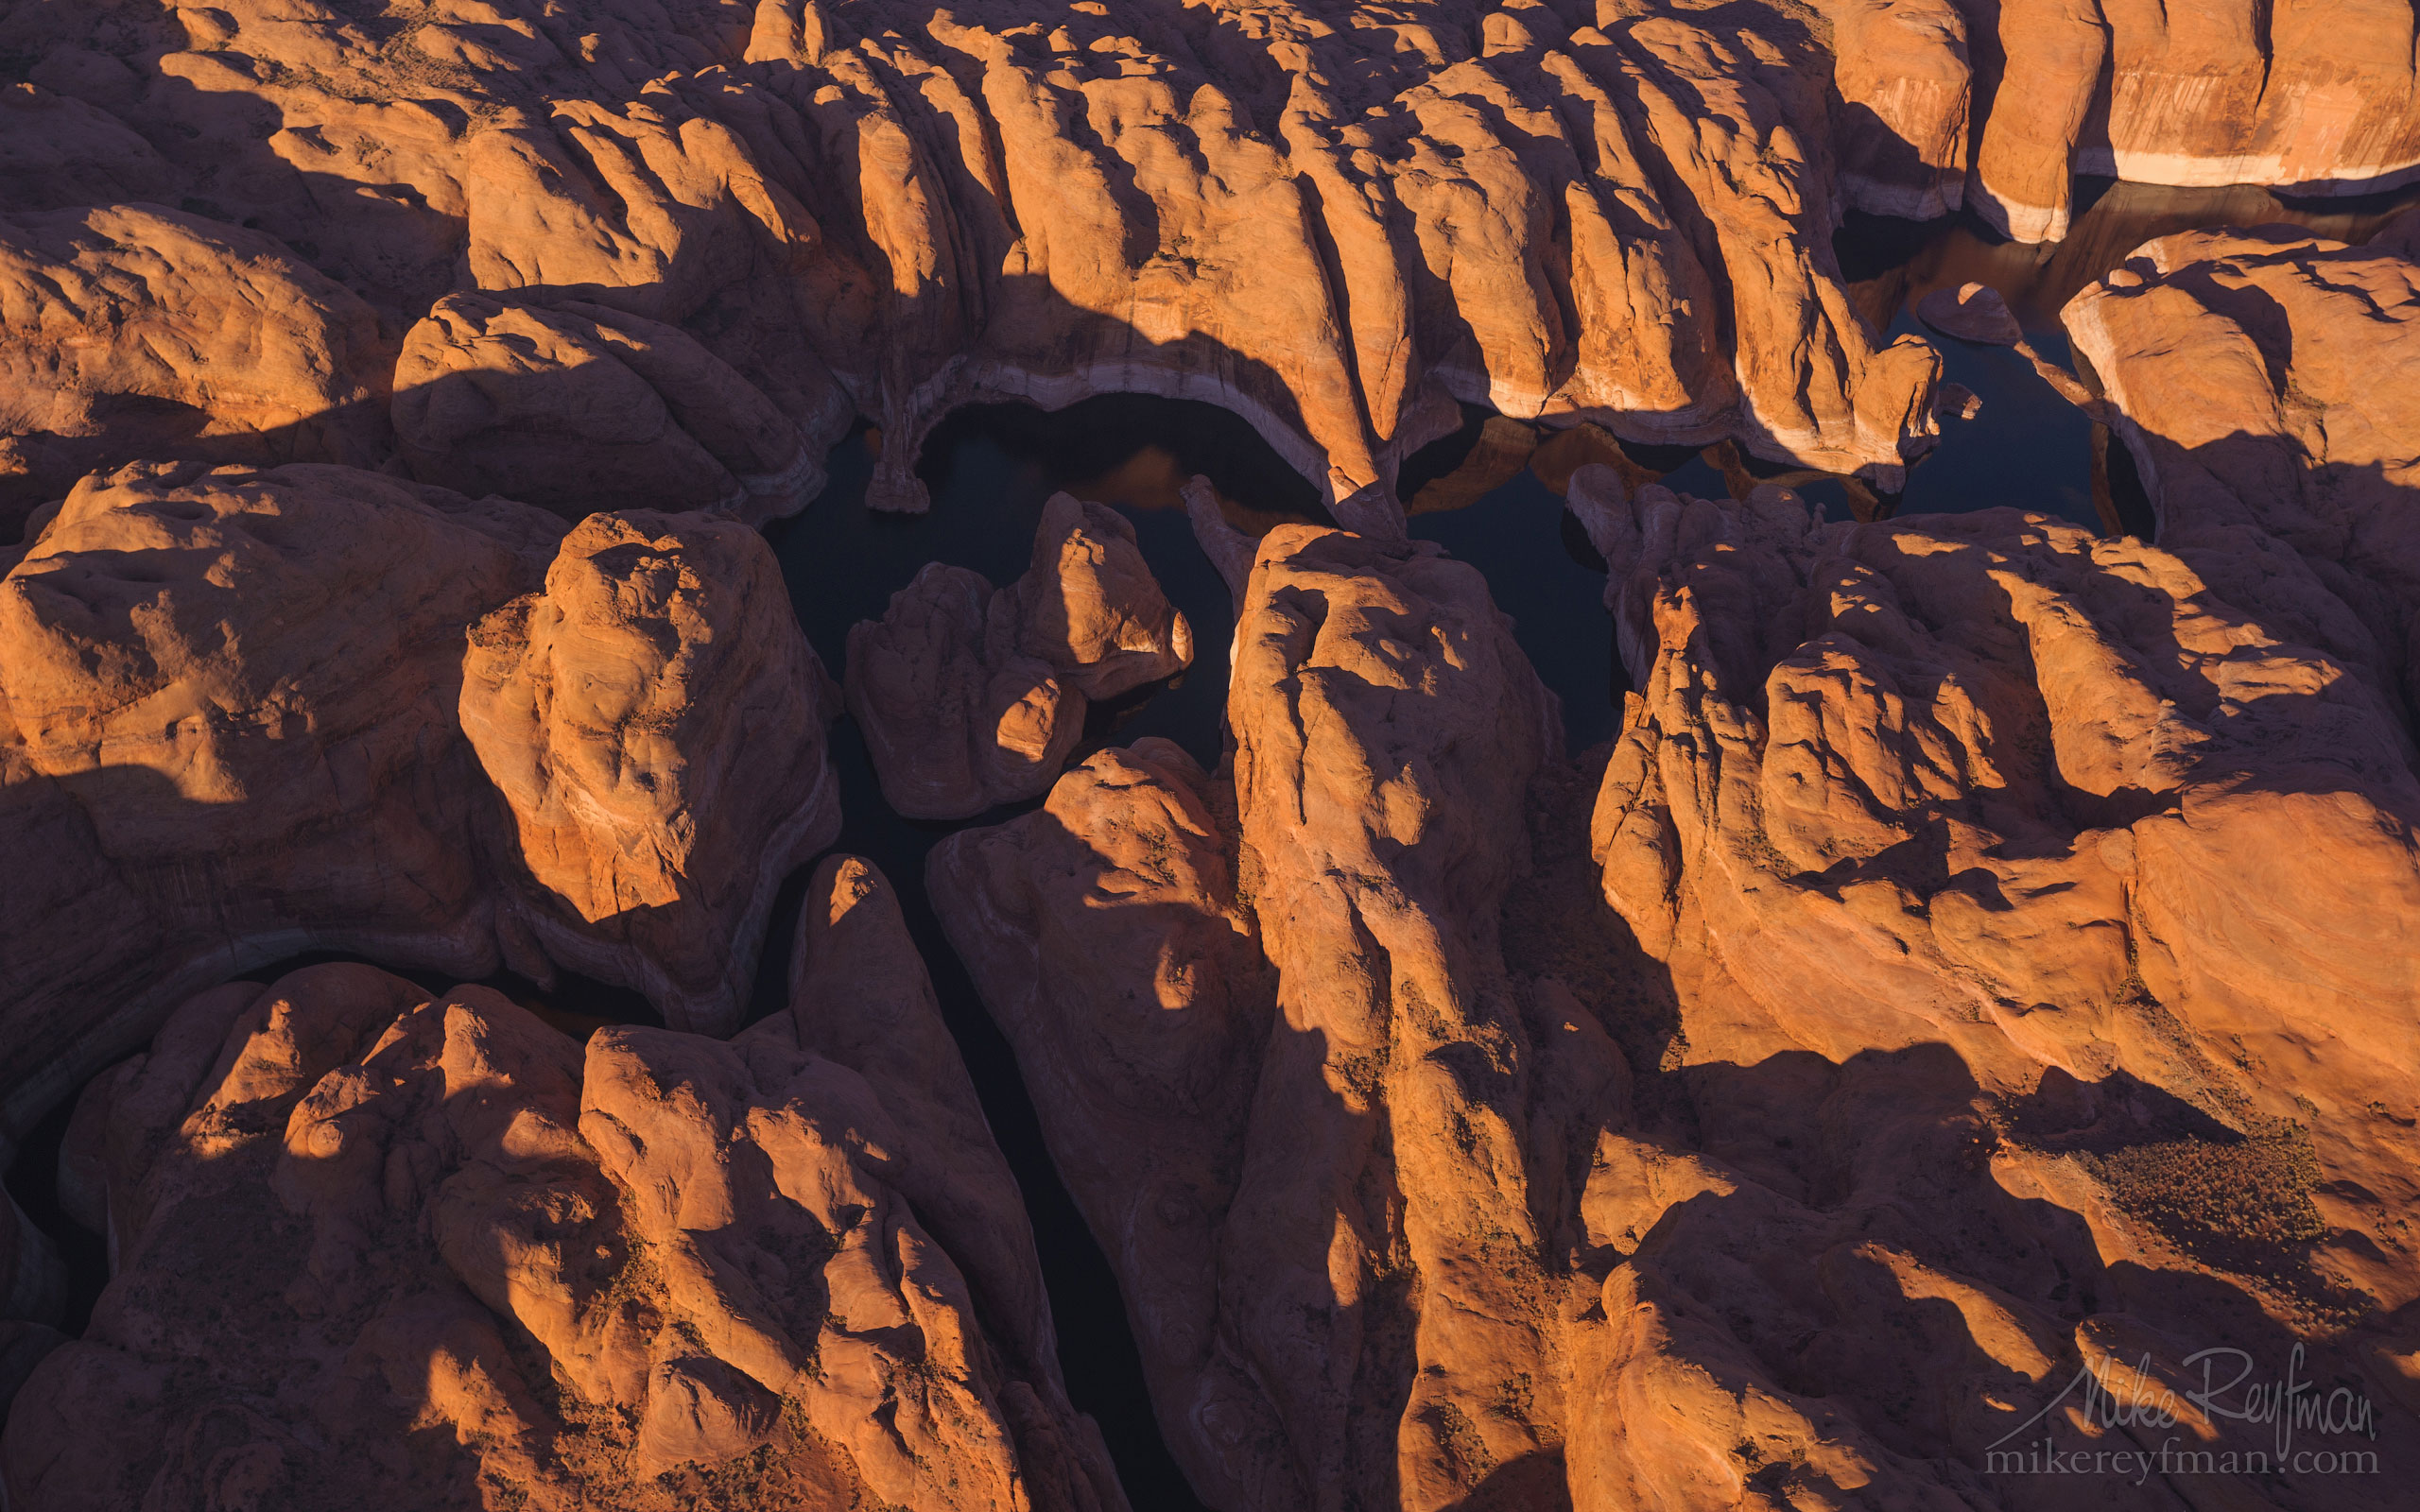 Anasazi Canyon Abstracts. Anasazi Canyon, Lake Powell, Glen Canyon NRA, Utah/Arizona, US. Aerial. 088-LP3081025_158.jpg - Lake Powell, Glen Canyon NAR. Colorado and Sun Juan Rivers. Utah/Arizona, USA  - Mike Reyfman Photography